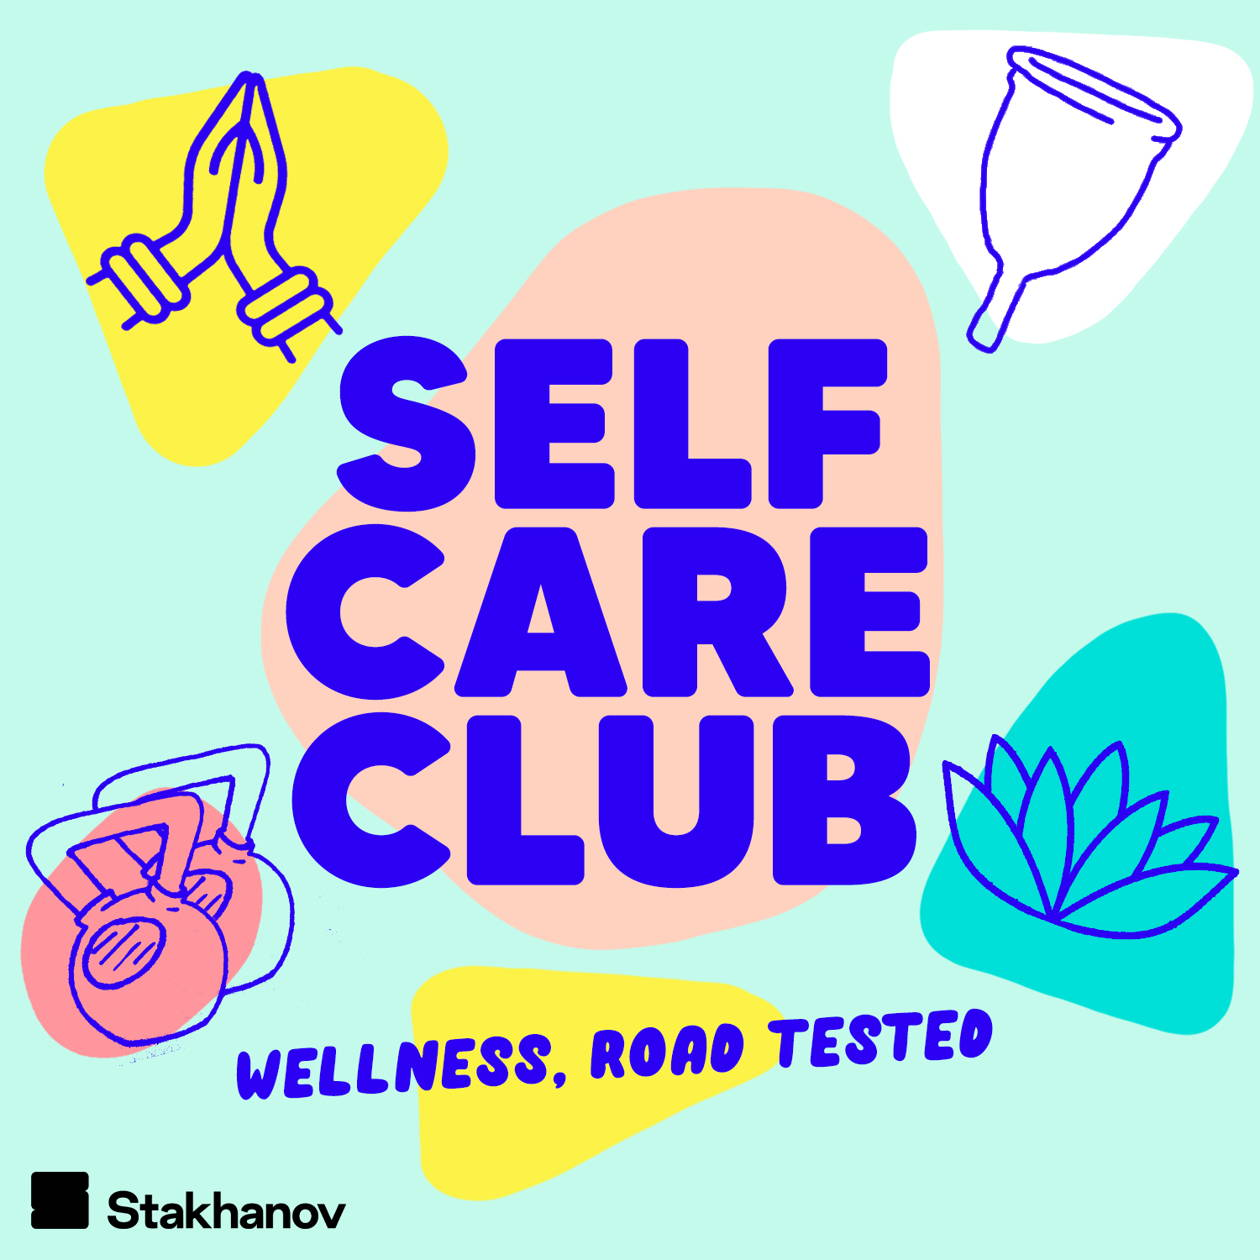 Artwork for the Self Care Club: Wellness, road tested podcast.